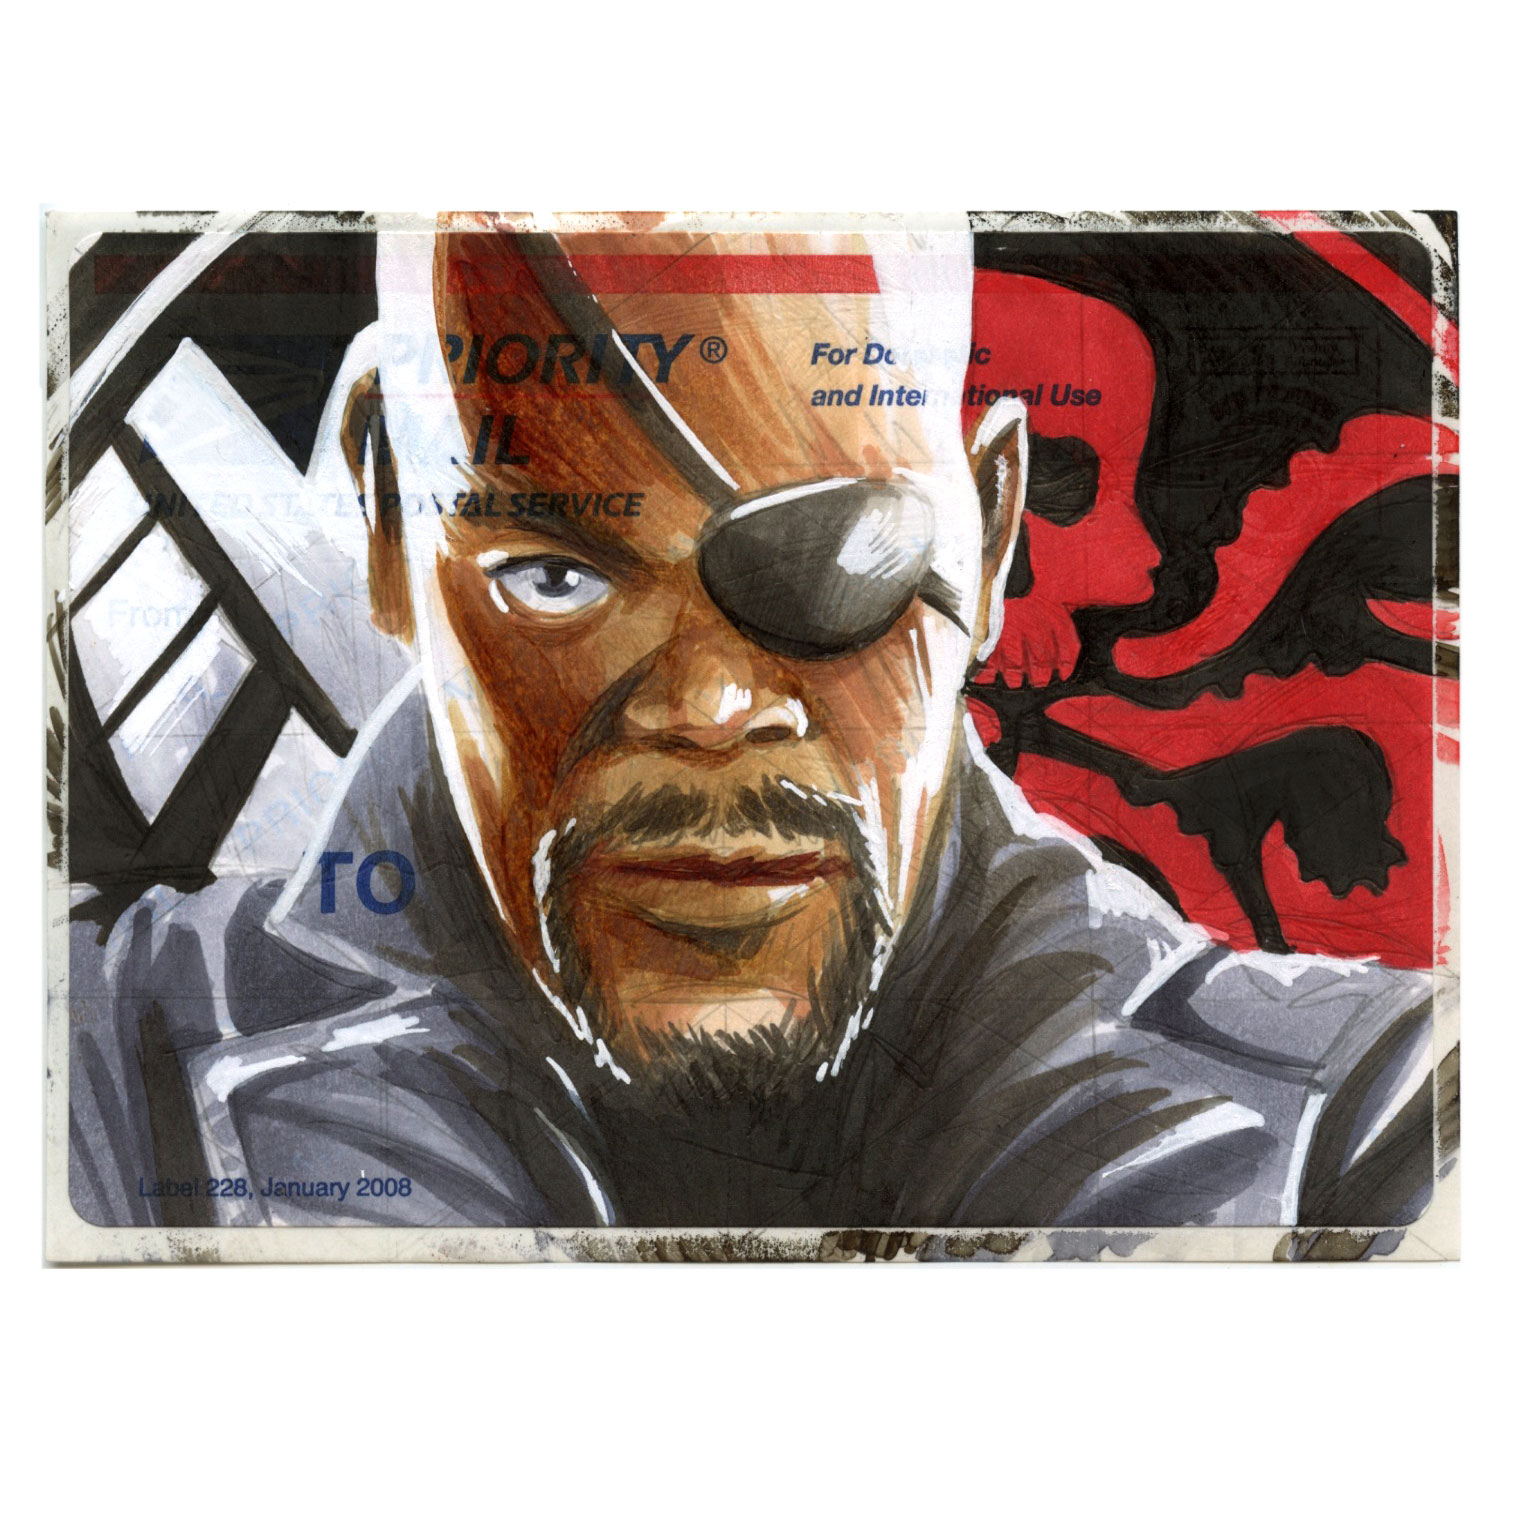 Copic Nick Fury on a 228